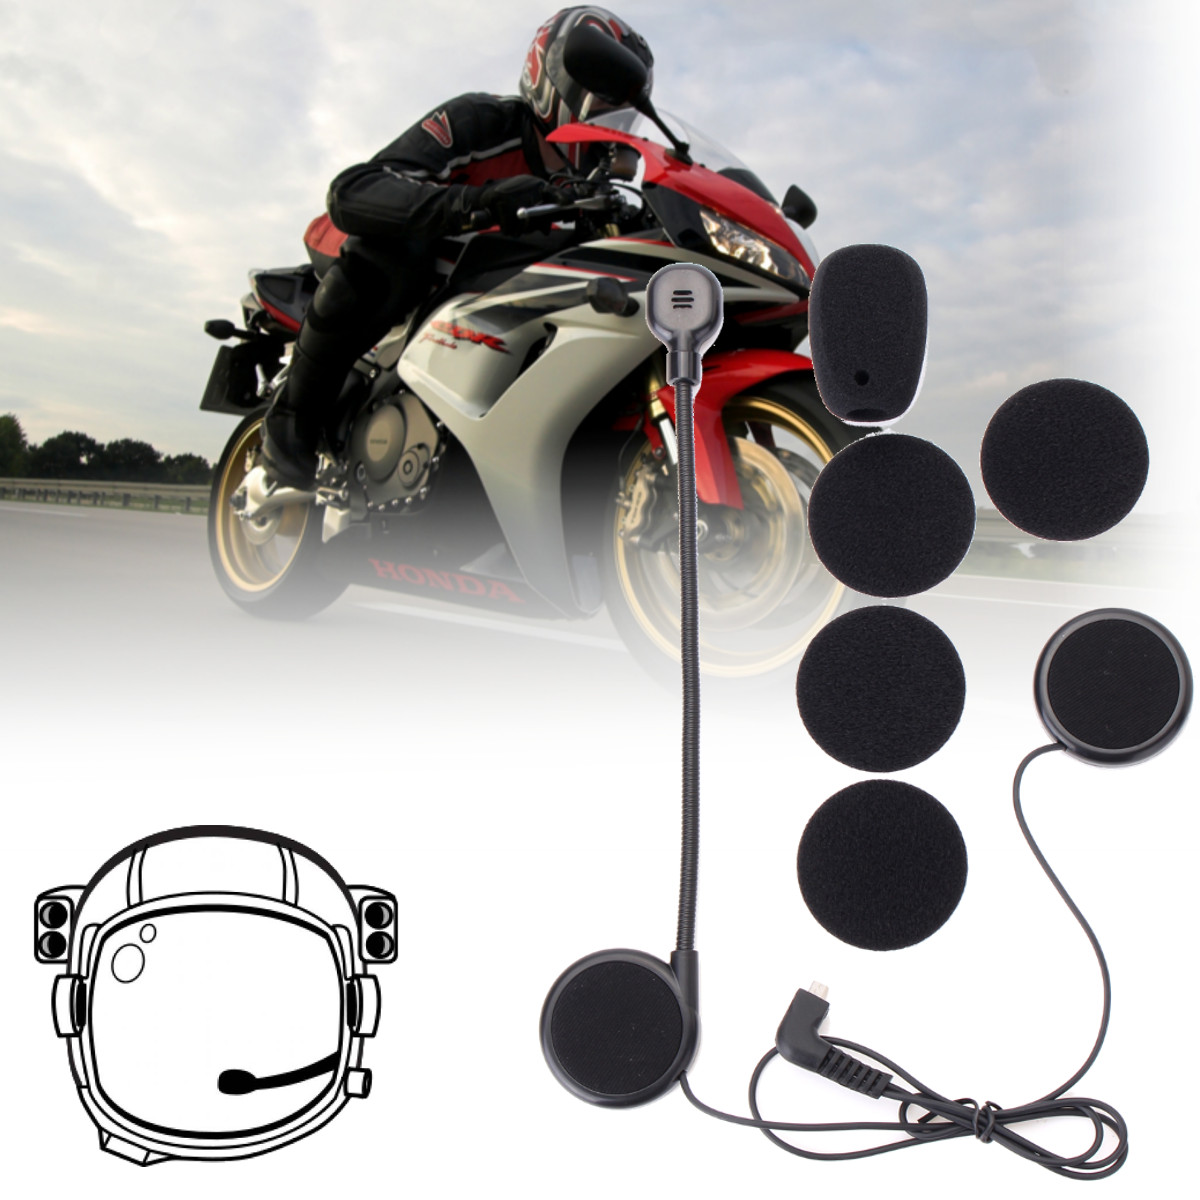 ABS Plastic Microphone Speaker Soft Cable Headset Accessory For Freedconn Motorcycle Helmet Bluetooth Interphone Intercom